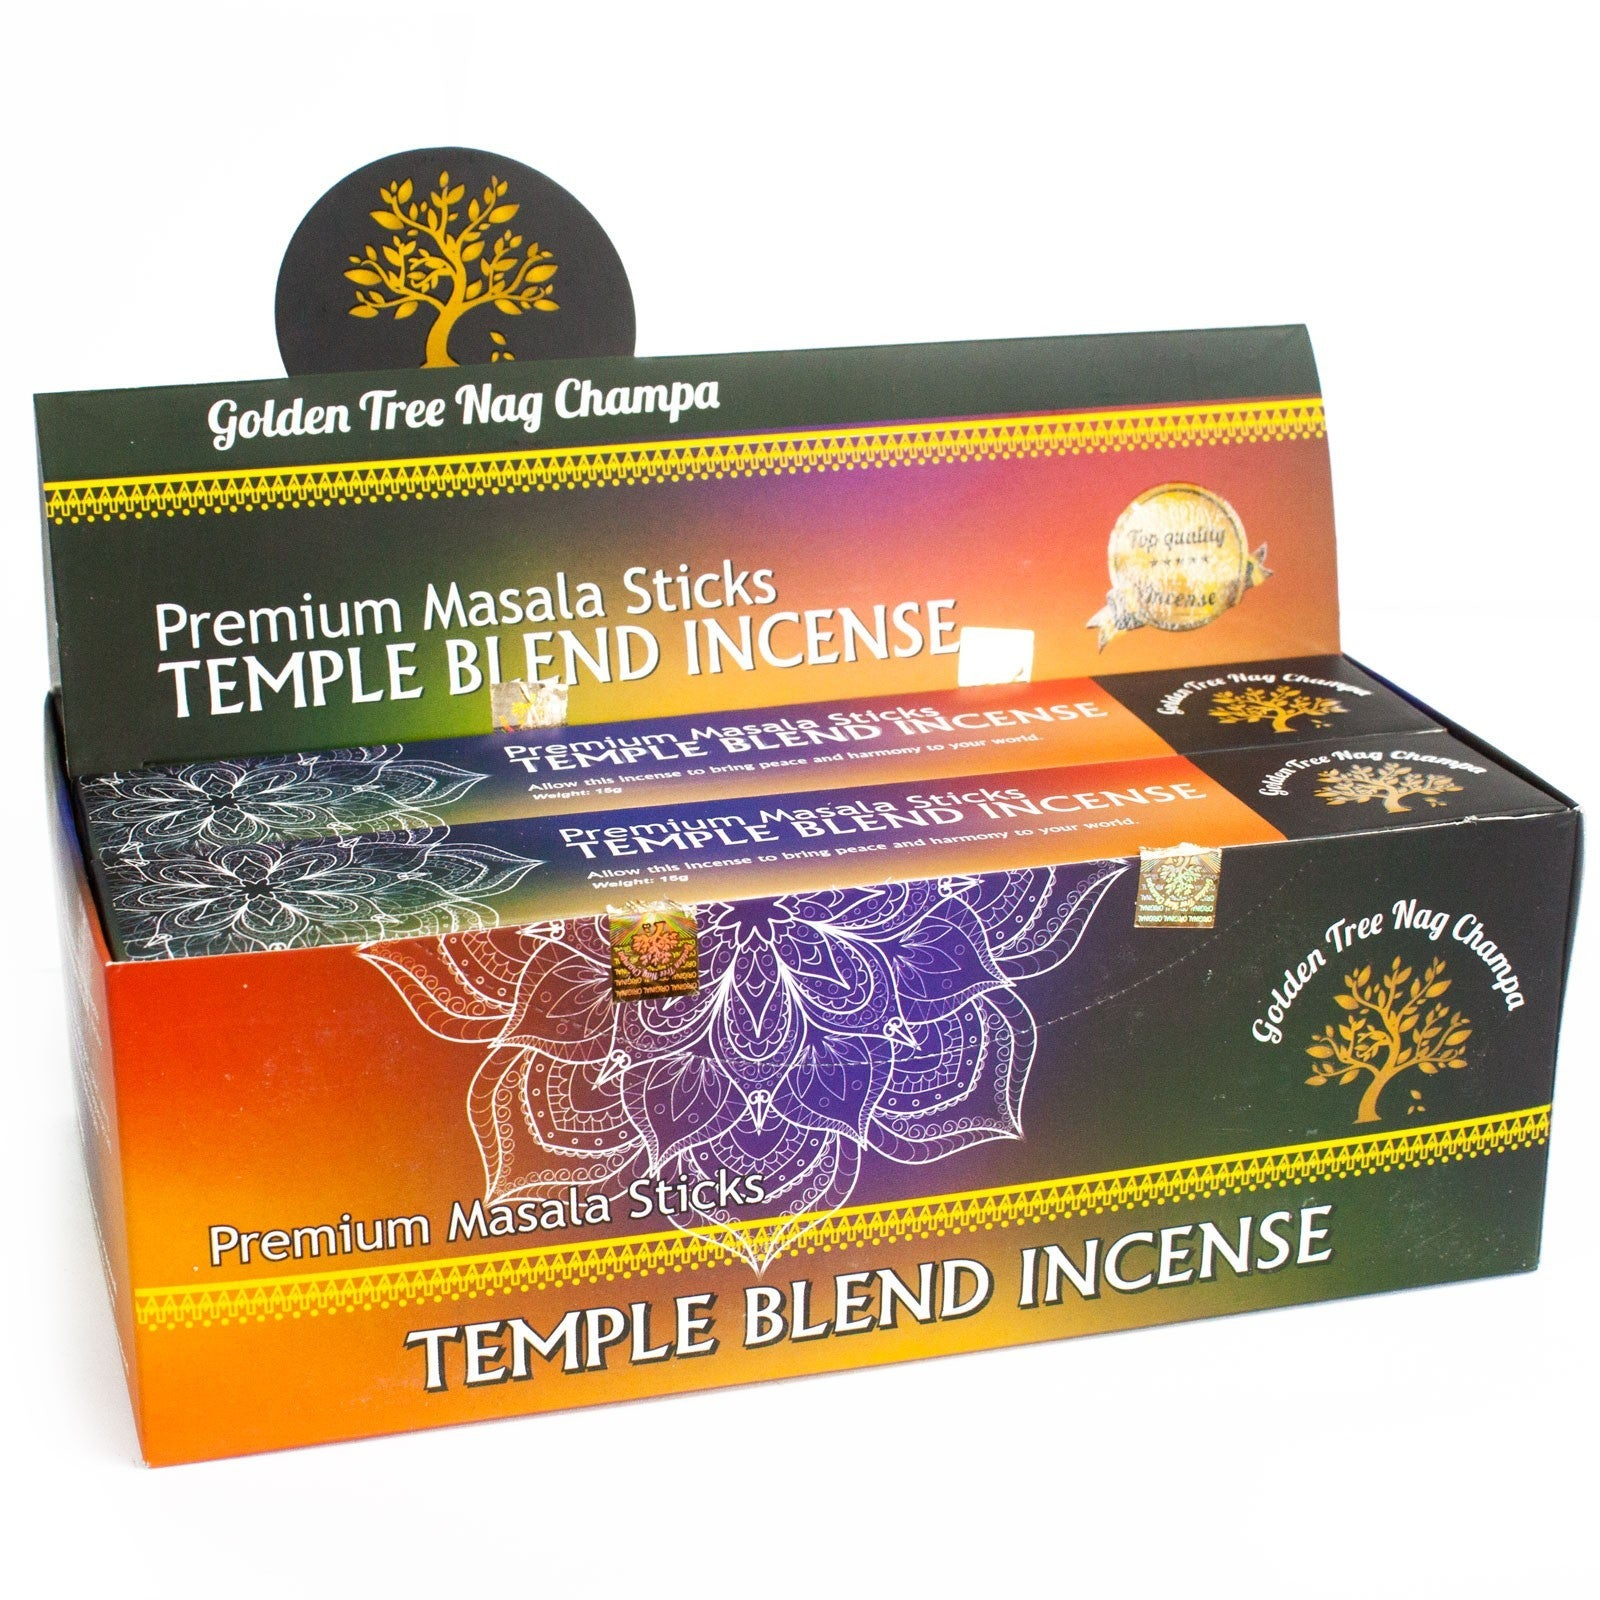 Dišeče palčke Golden Tree Nag Champa Incense - Temple Blend